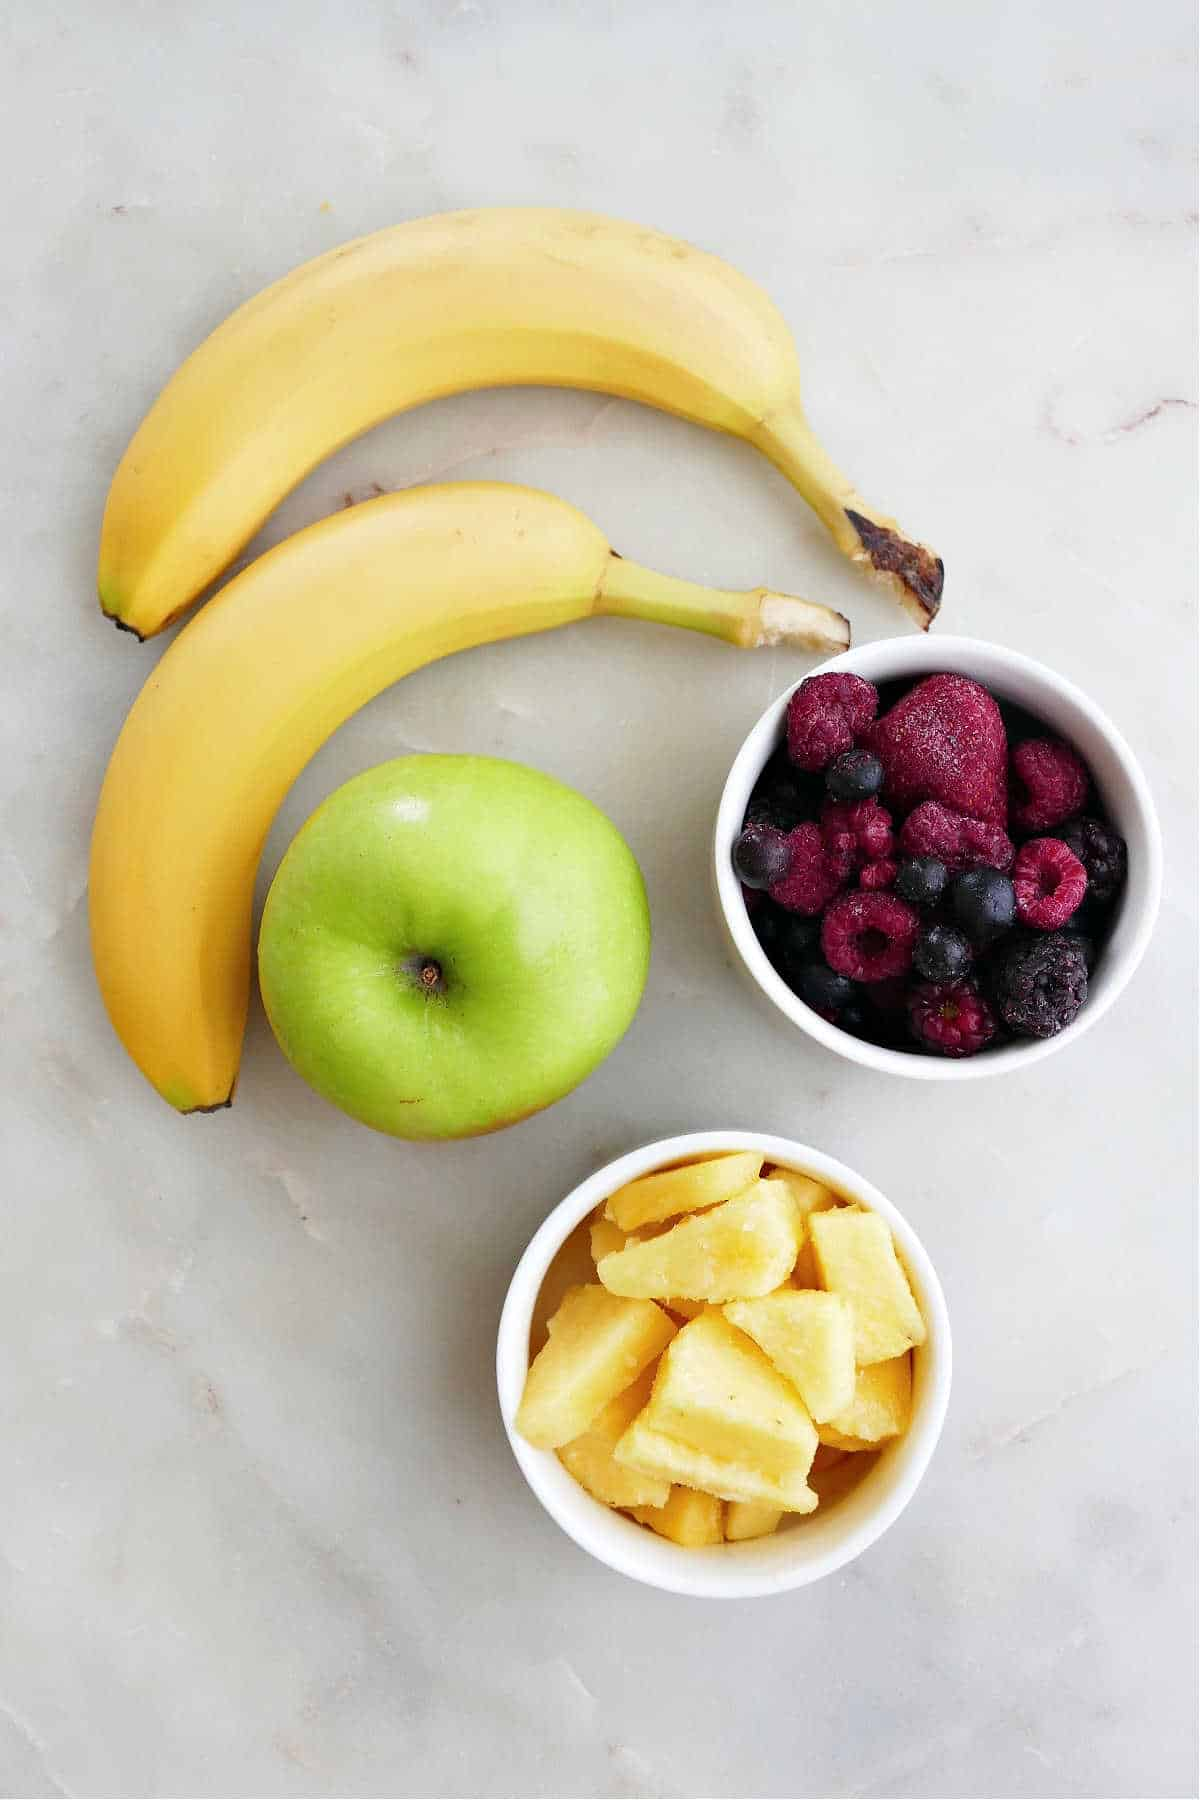 bananas, green apple, berries, and pineapple in bowls spread out on a counter